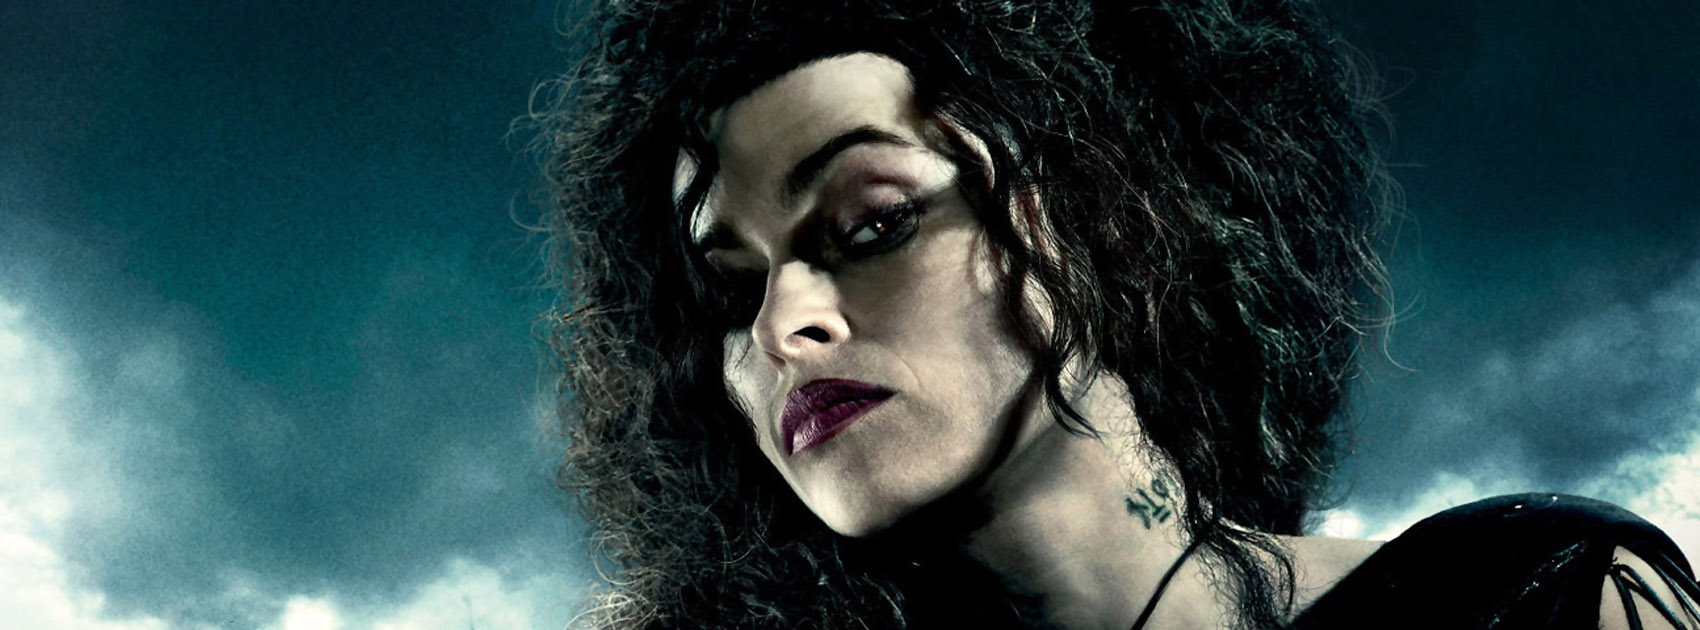 Best Wallpaper Harry Potter Facebook - bellatrix-lestrange-facebook-timeline-cover  Graphic_15281.jpg